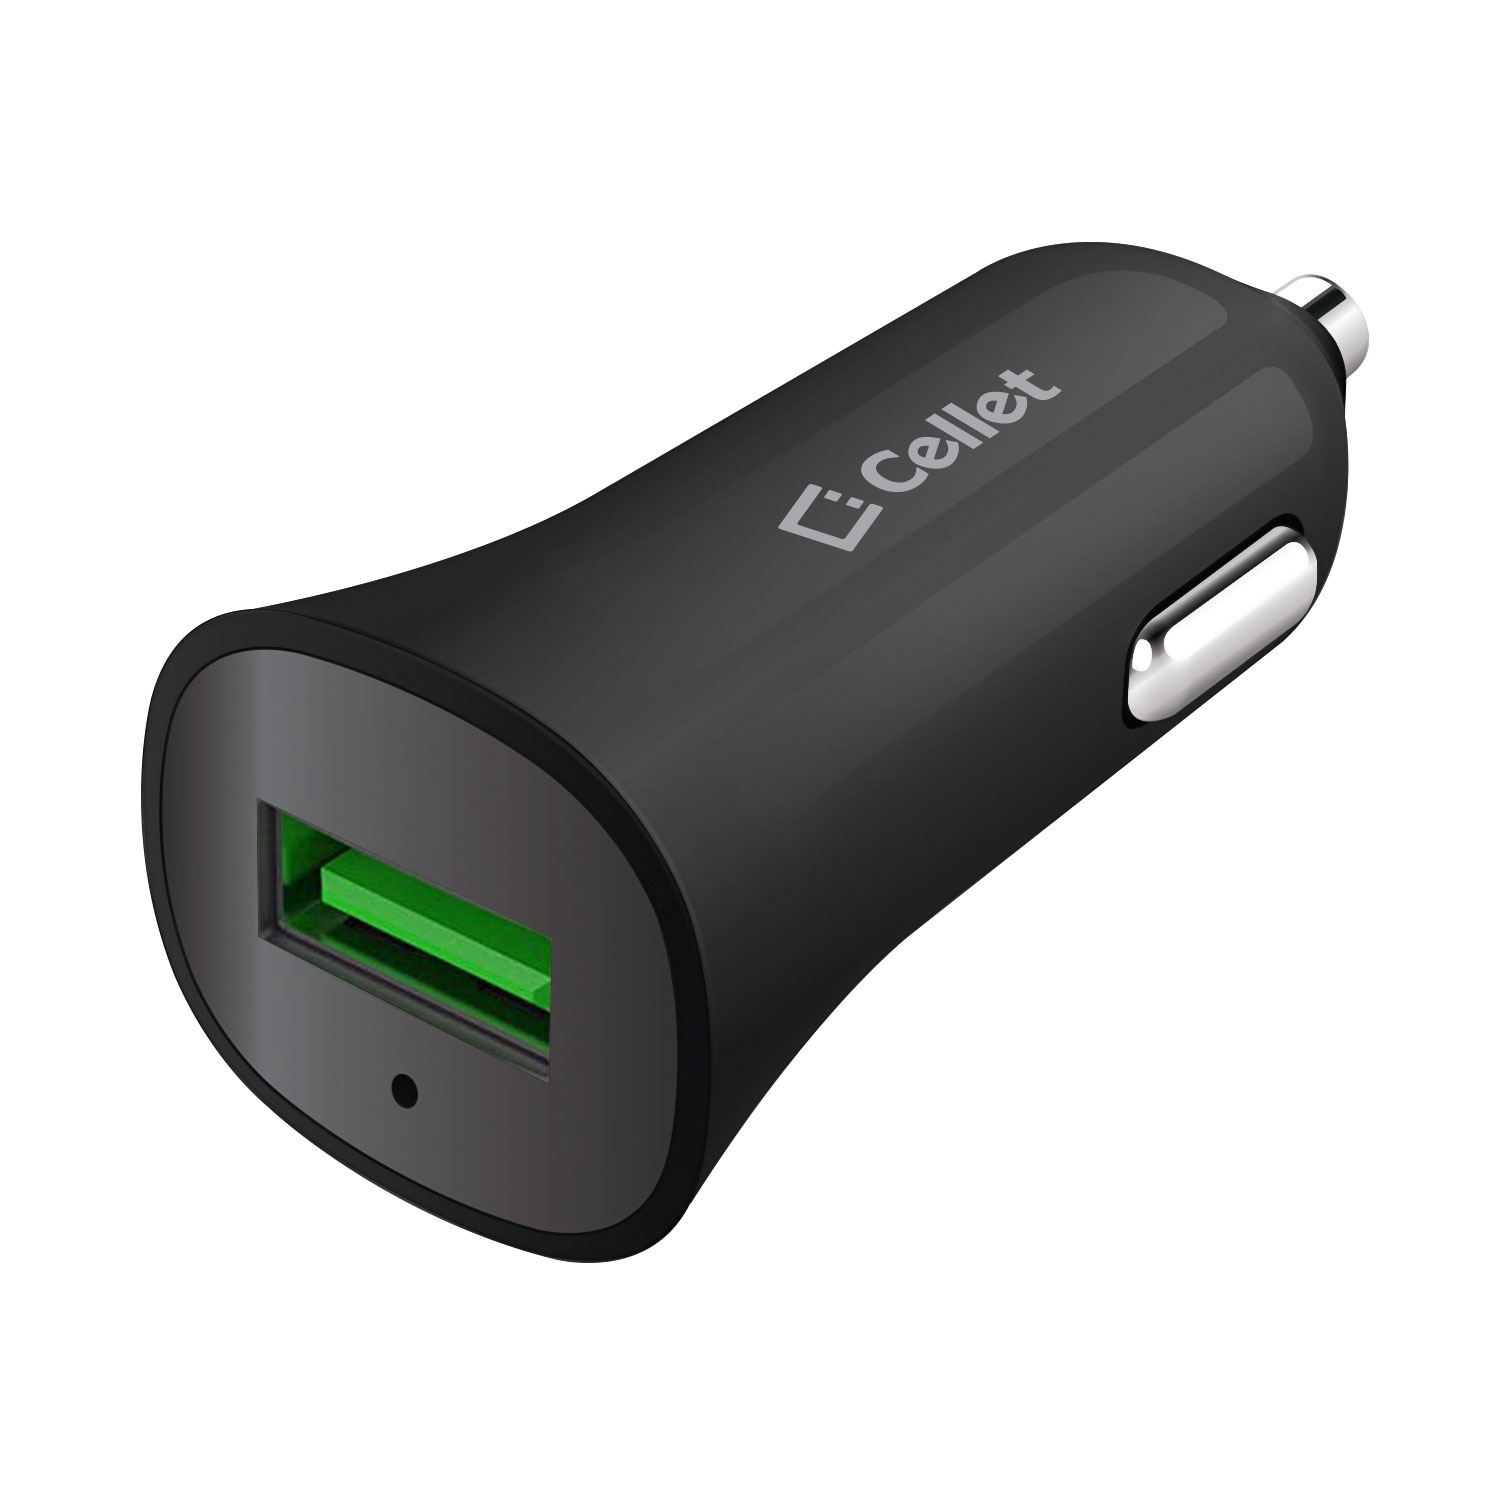 Huawei Fusion 2 Car Charger Quick Charge 3.0 Black 3.3ft